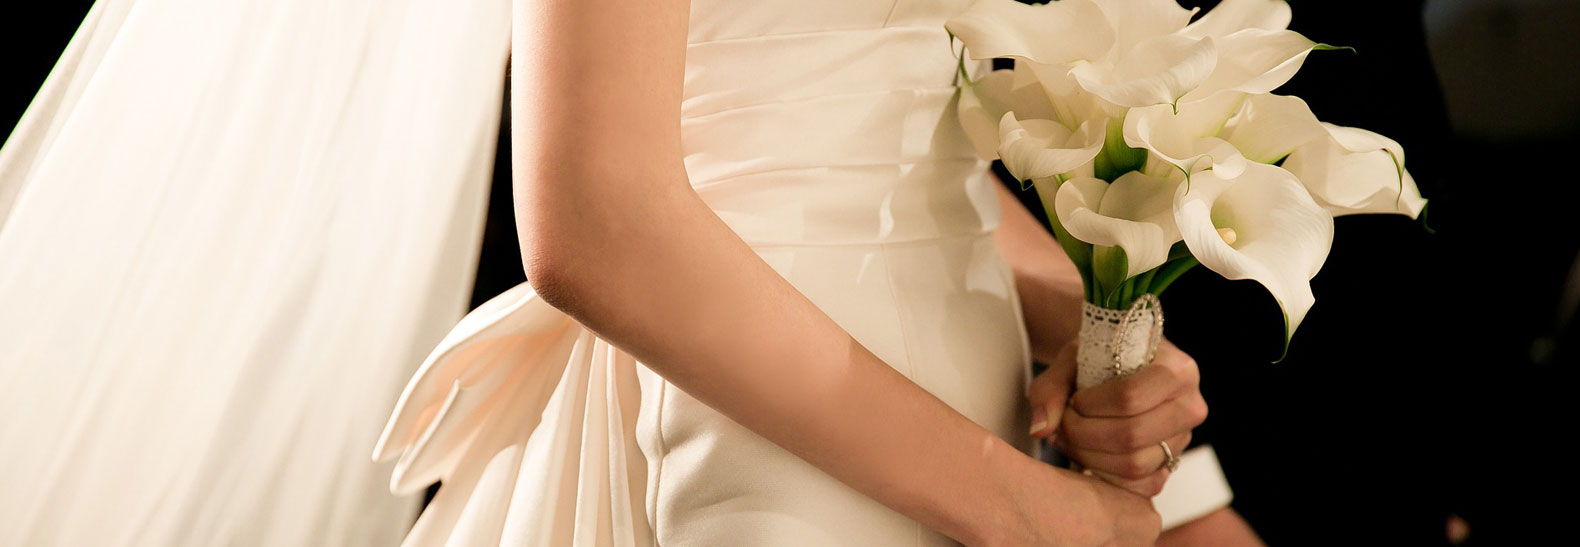 Tips for losing weight before the wedding